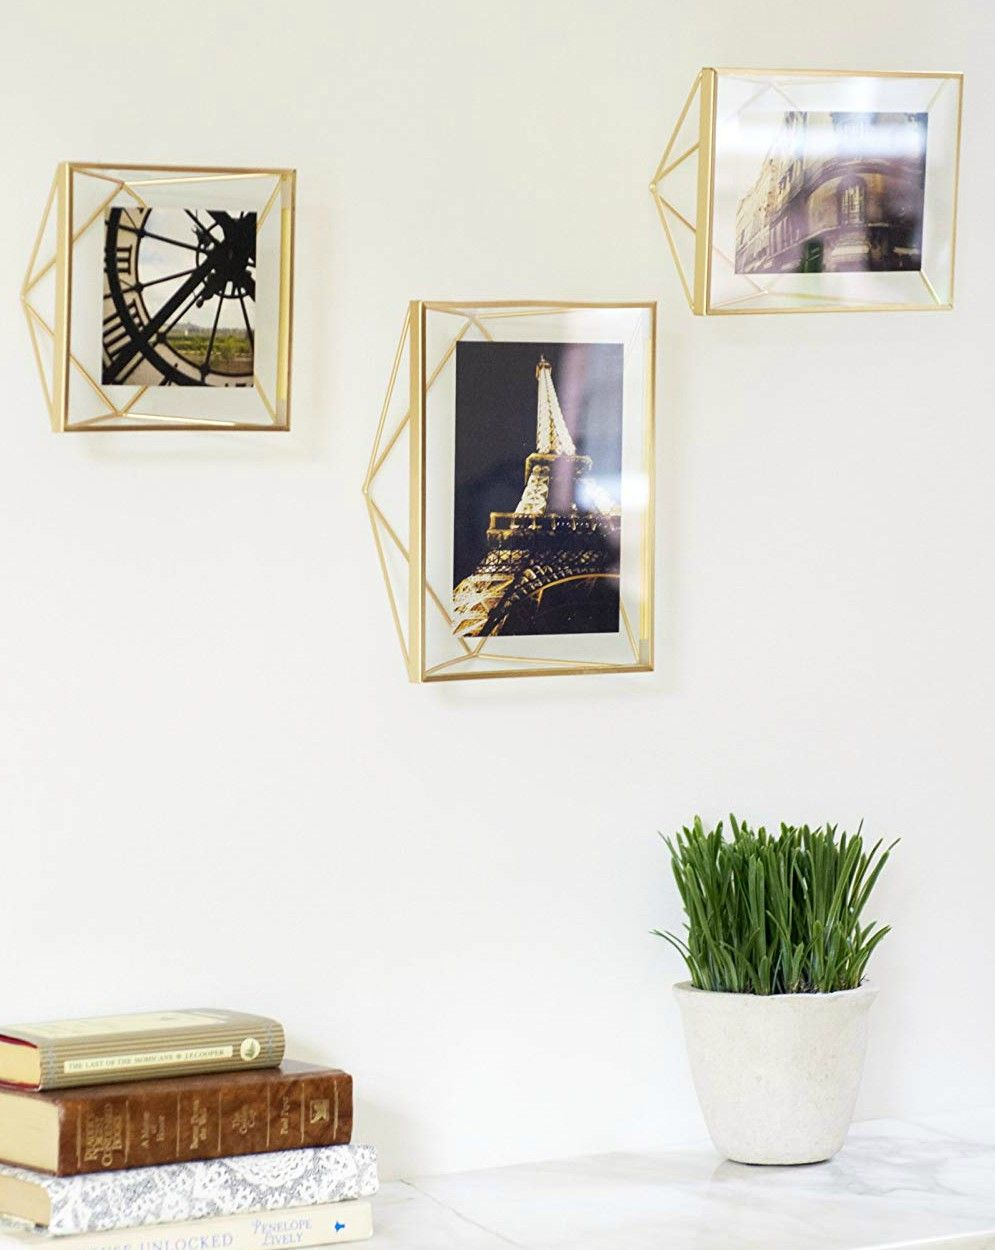 prisma phot frame - These 20 photo display ideas will give your memories a stylish edge